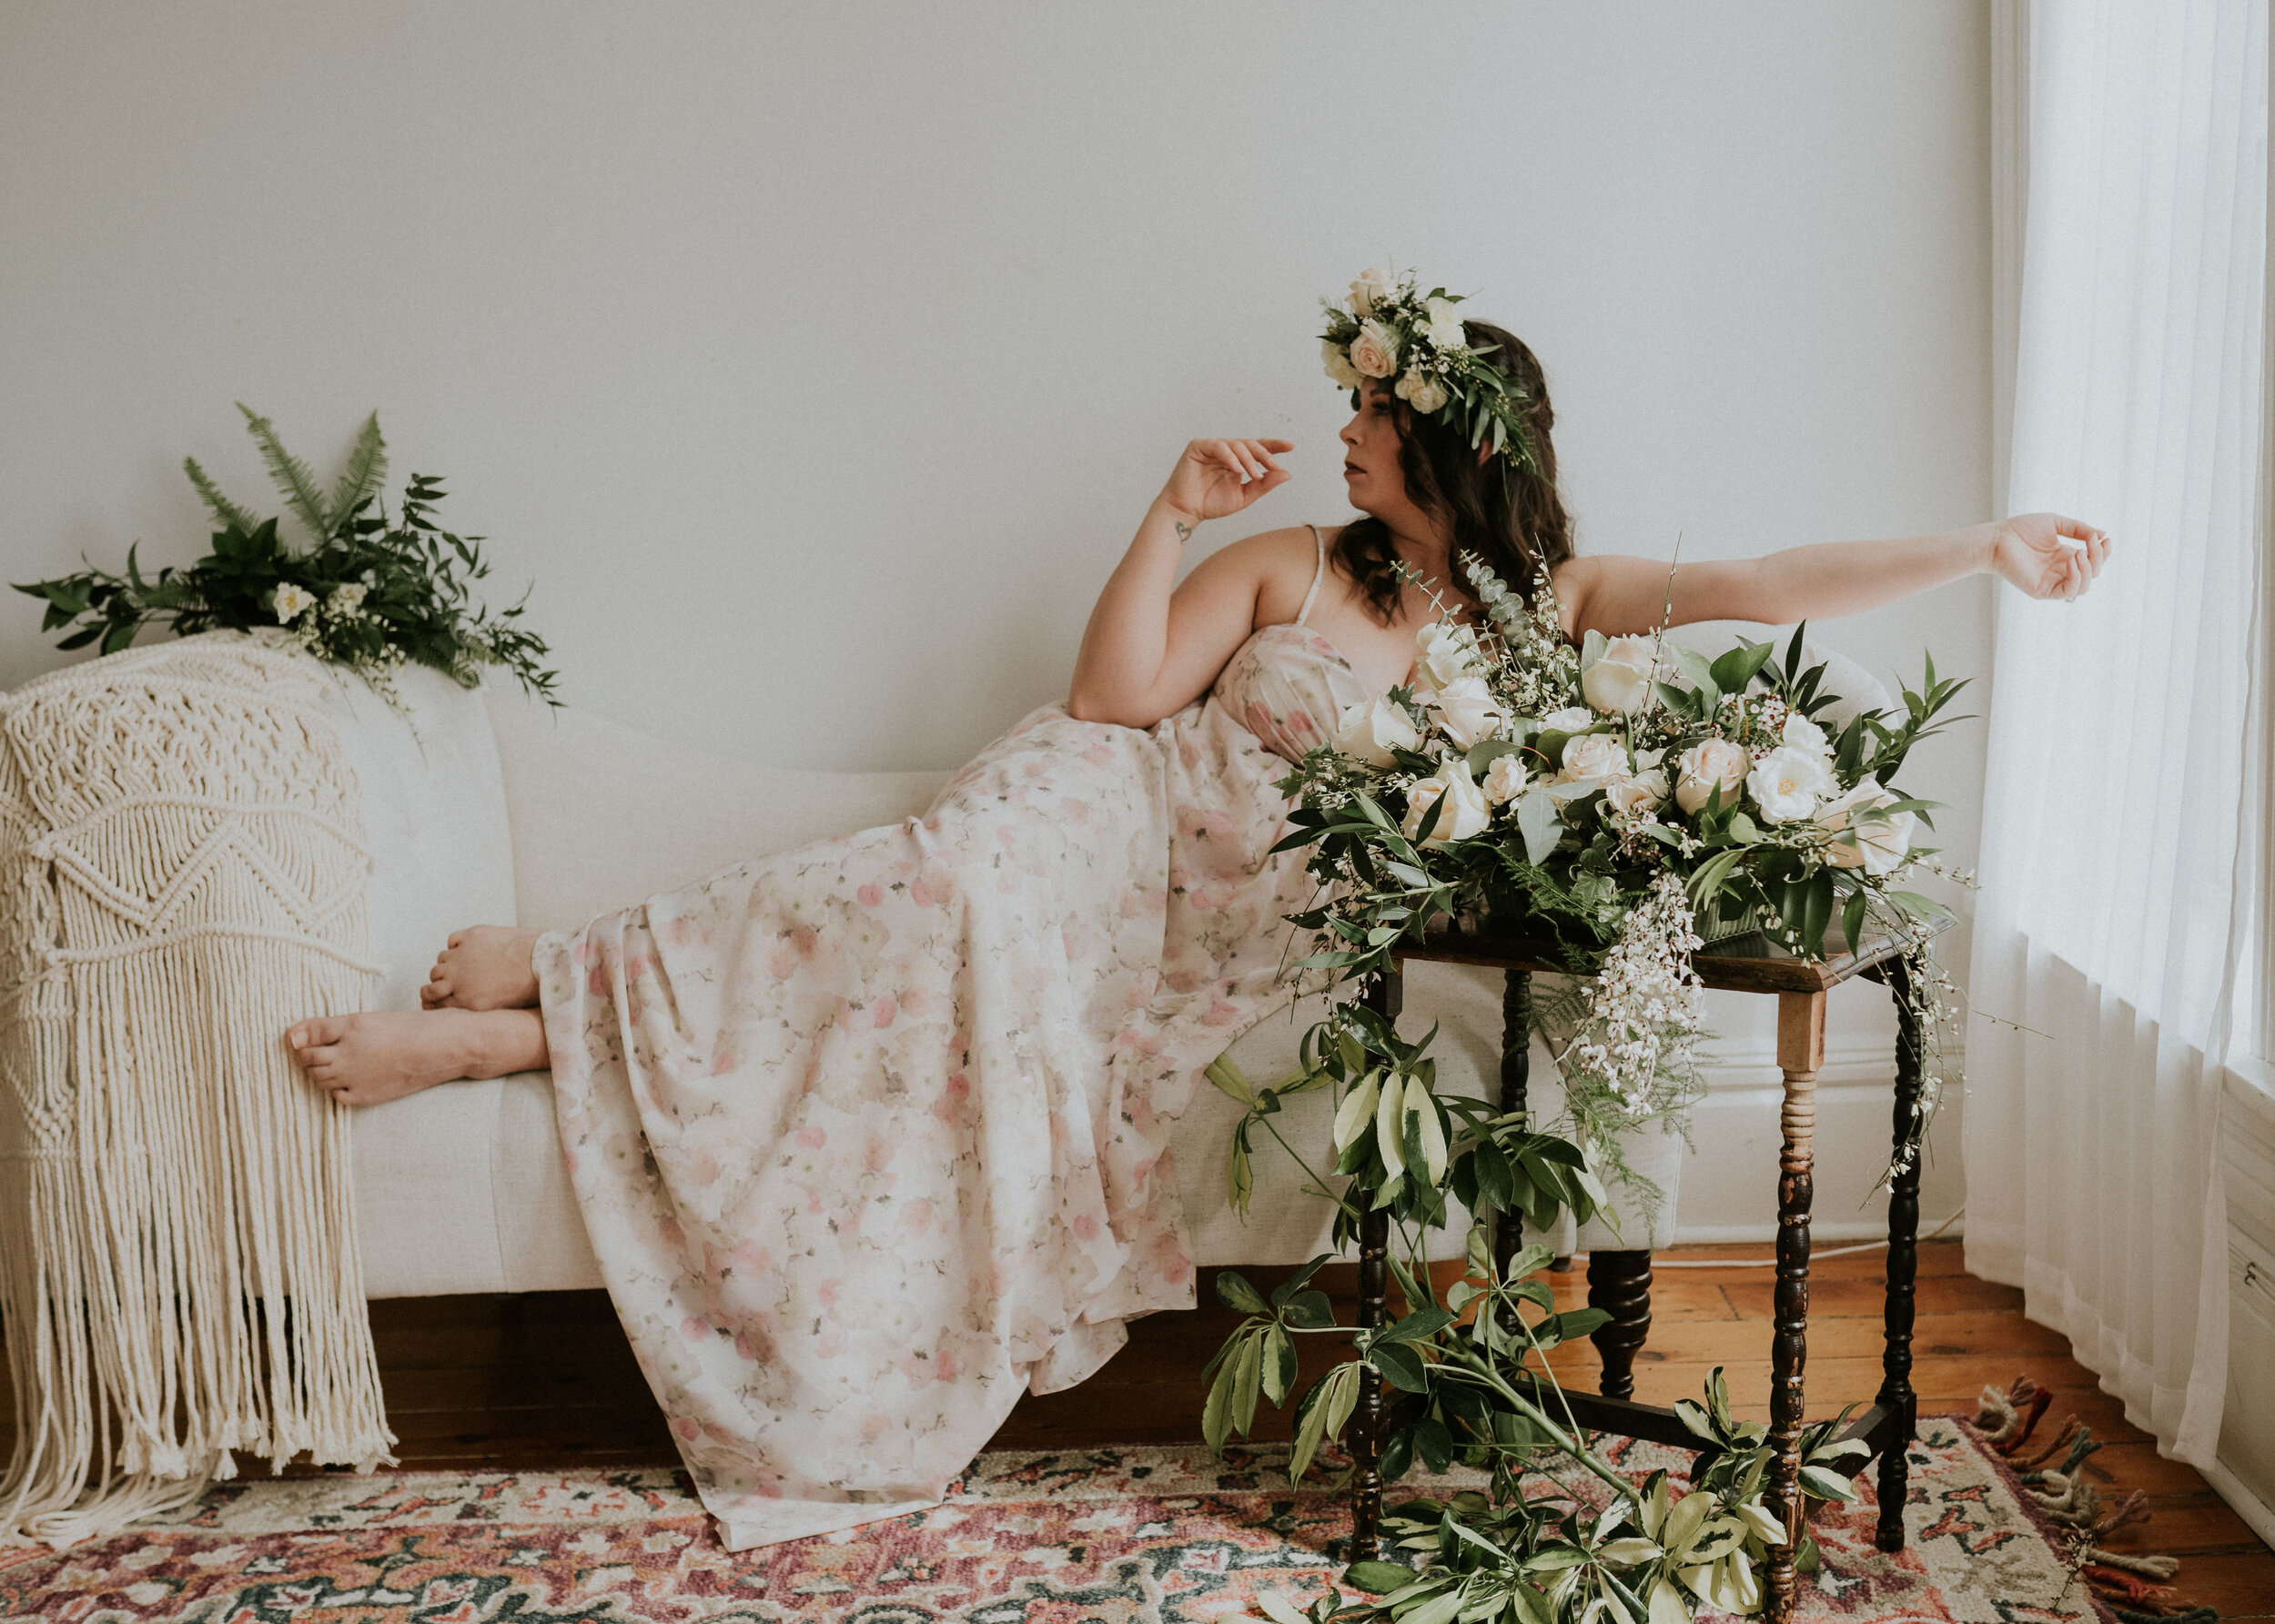 maternity styled photo shoot with woman in floral strapless gown, with macrame decor on white settee, white and cream floral arrangement and greenery rest on wooden vintage table, model wears a floral crown